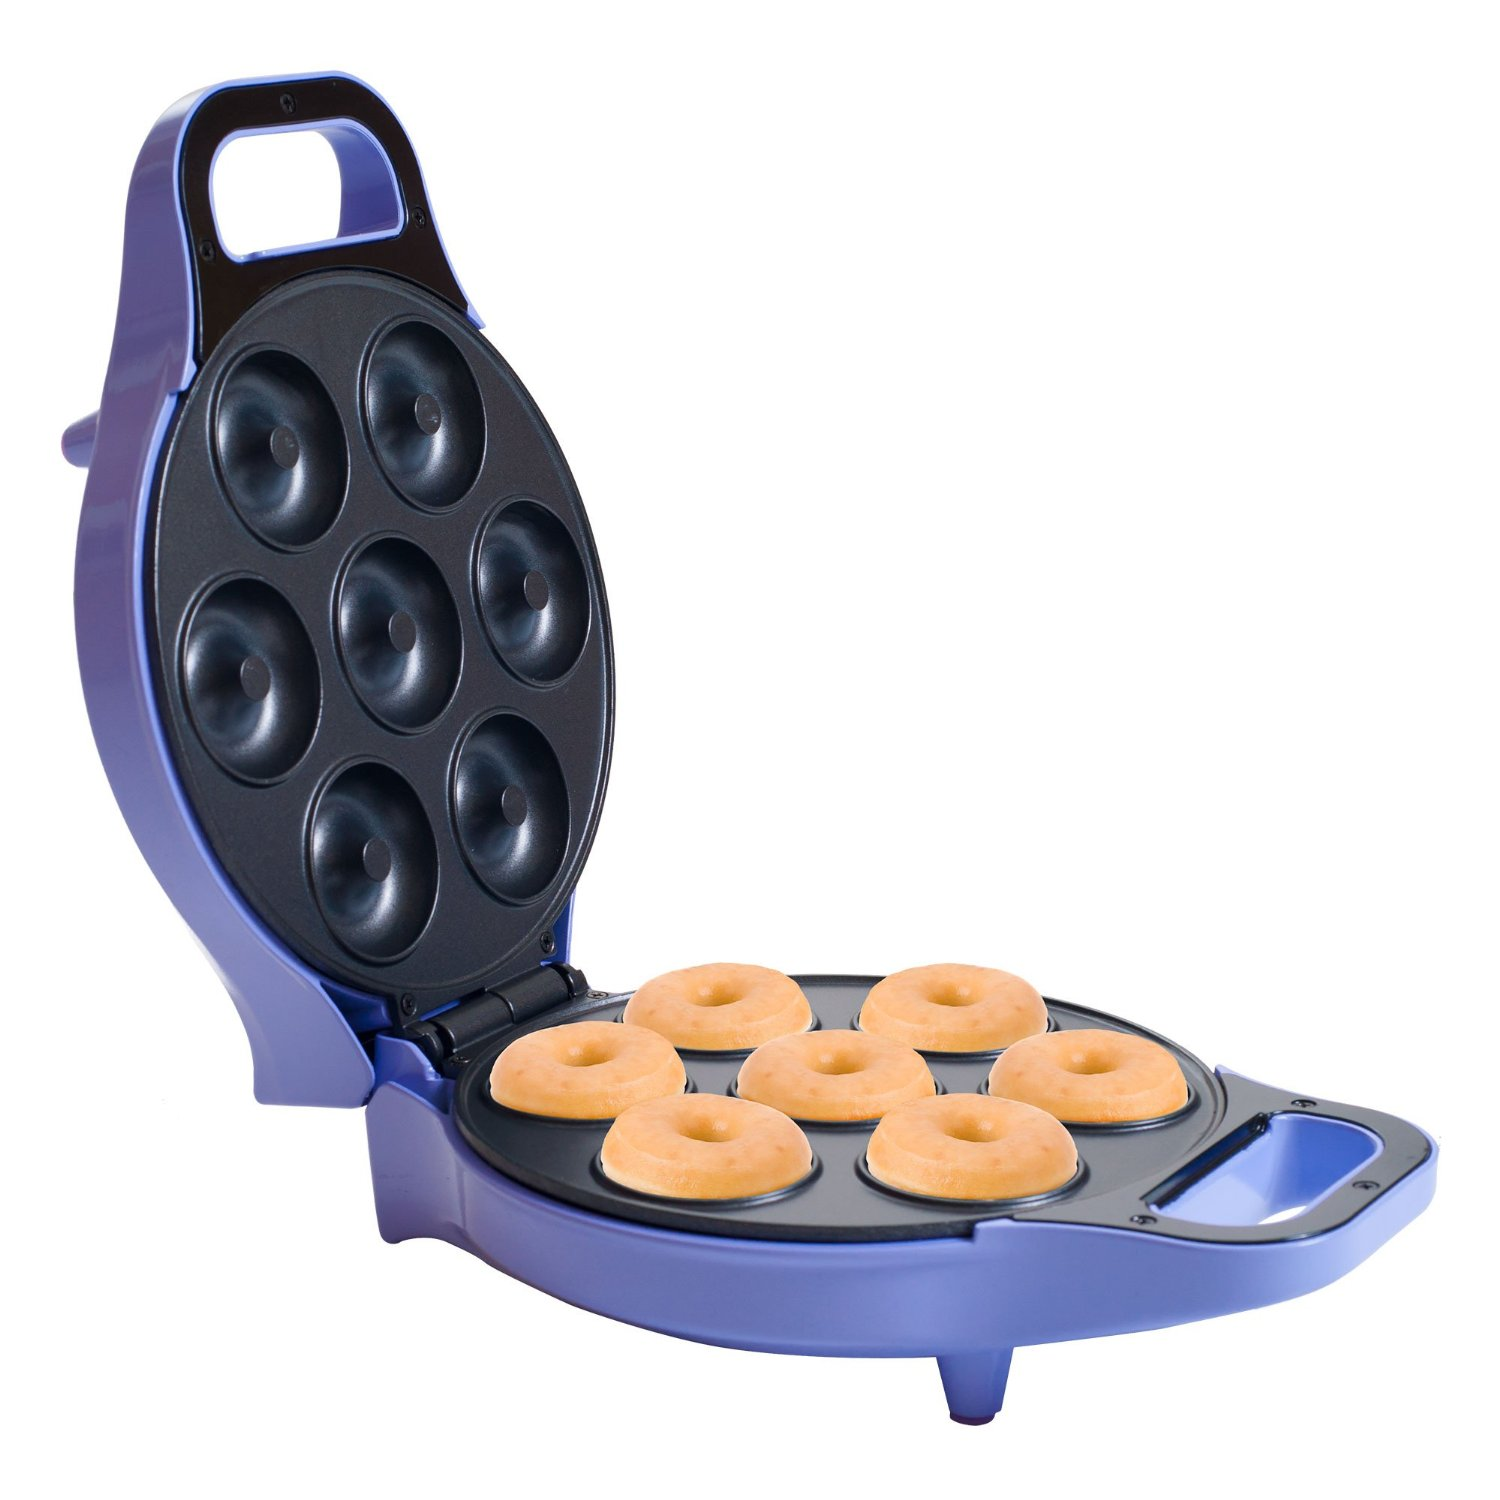 Top 10 Best Donut Maker Reviews — Most Popular Models of 2020